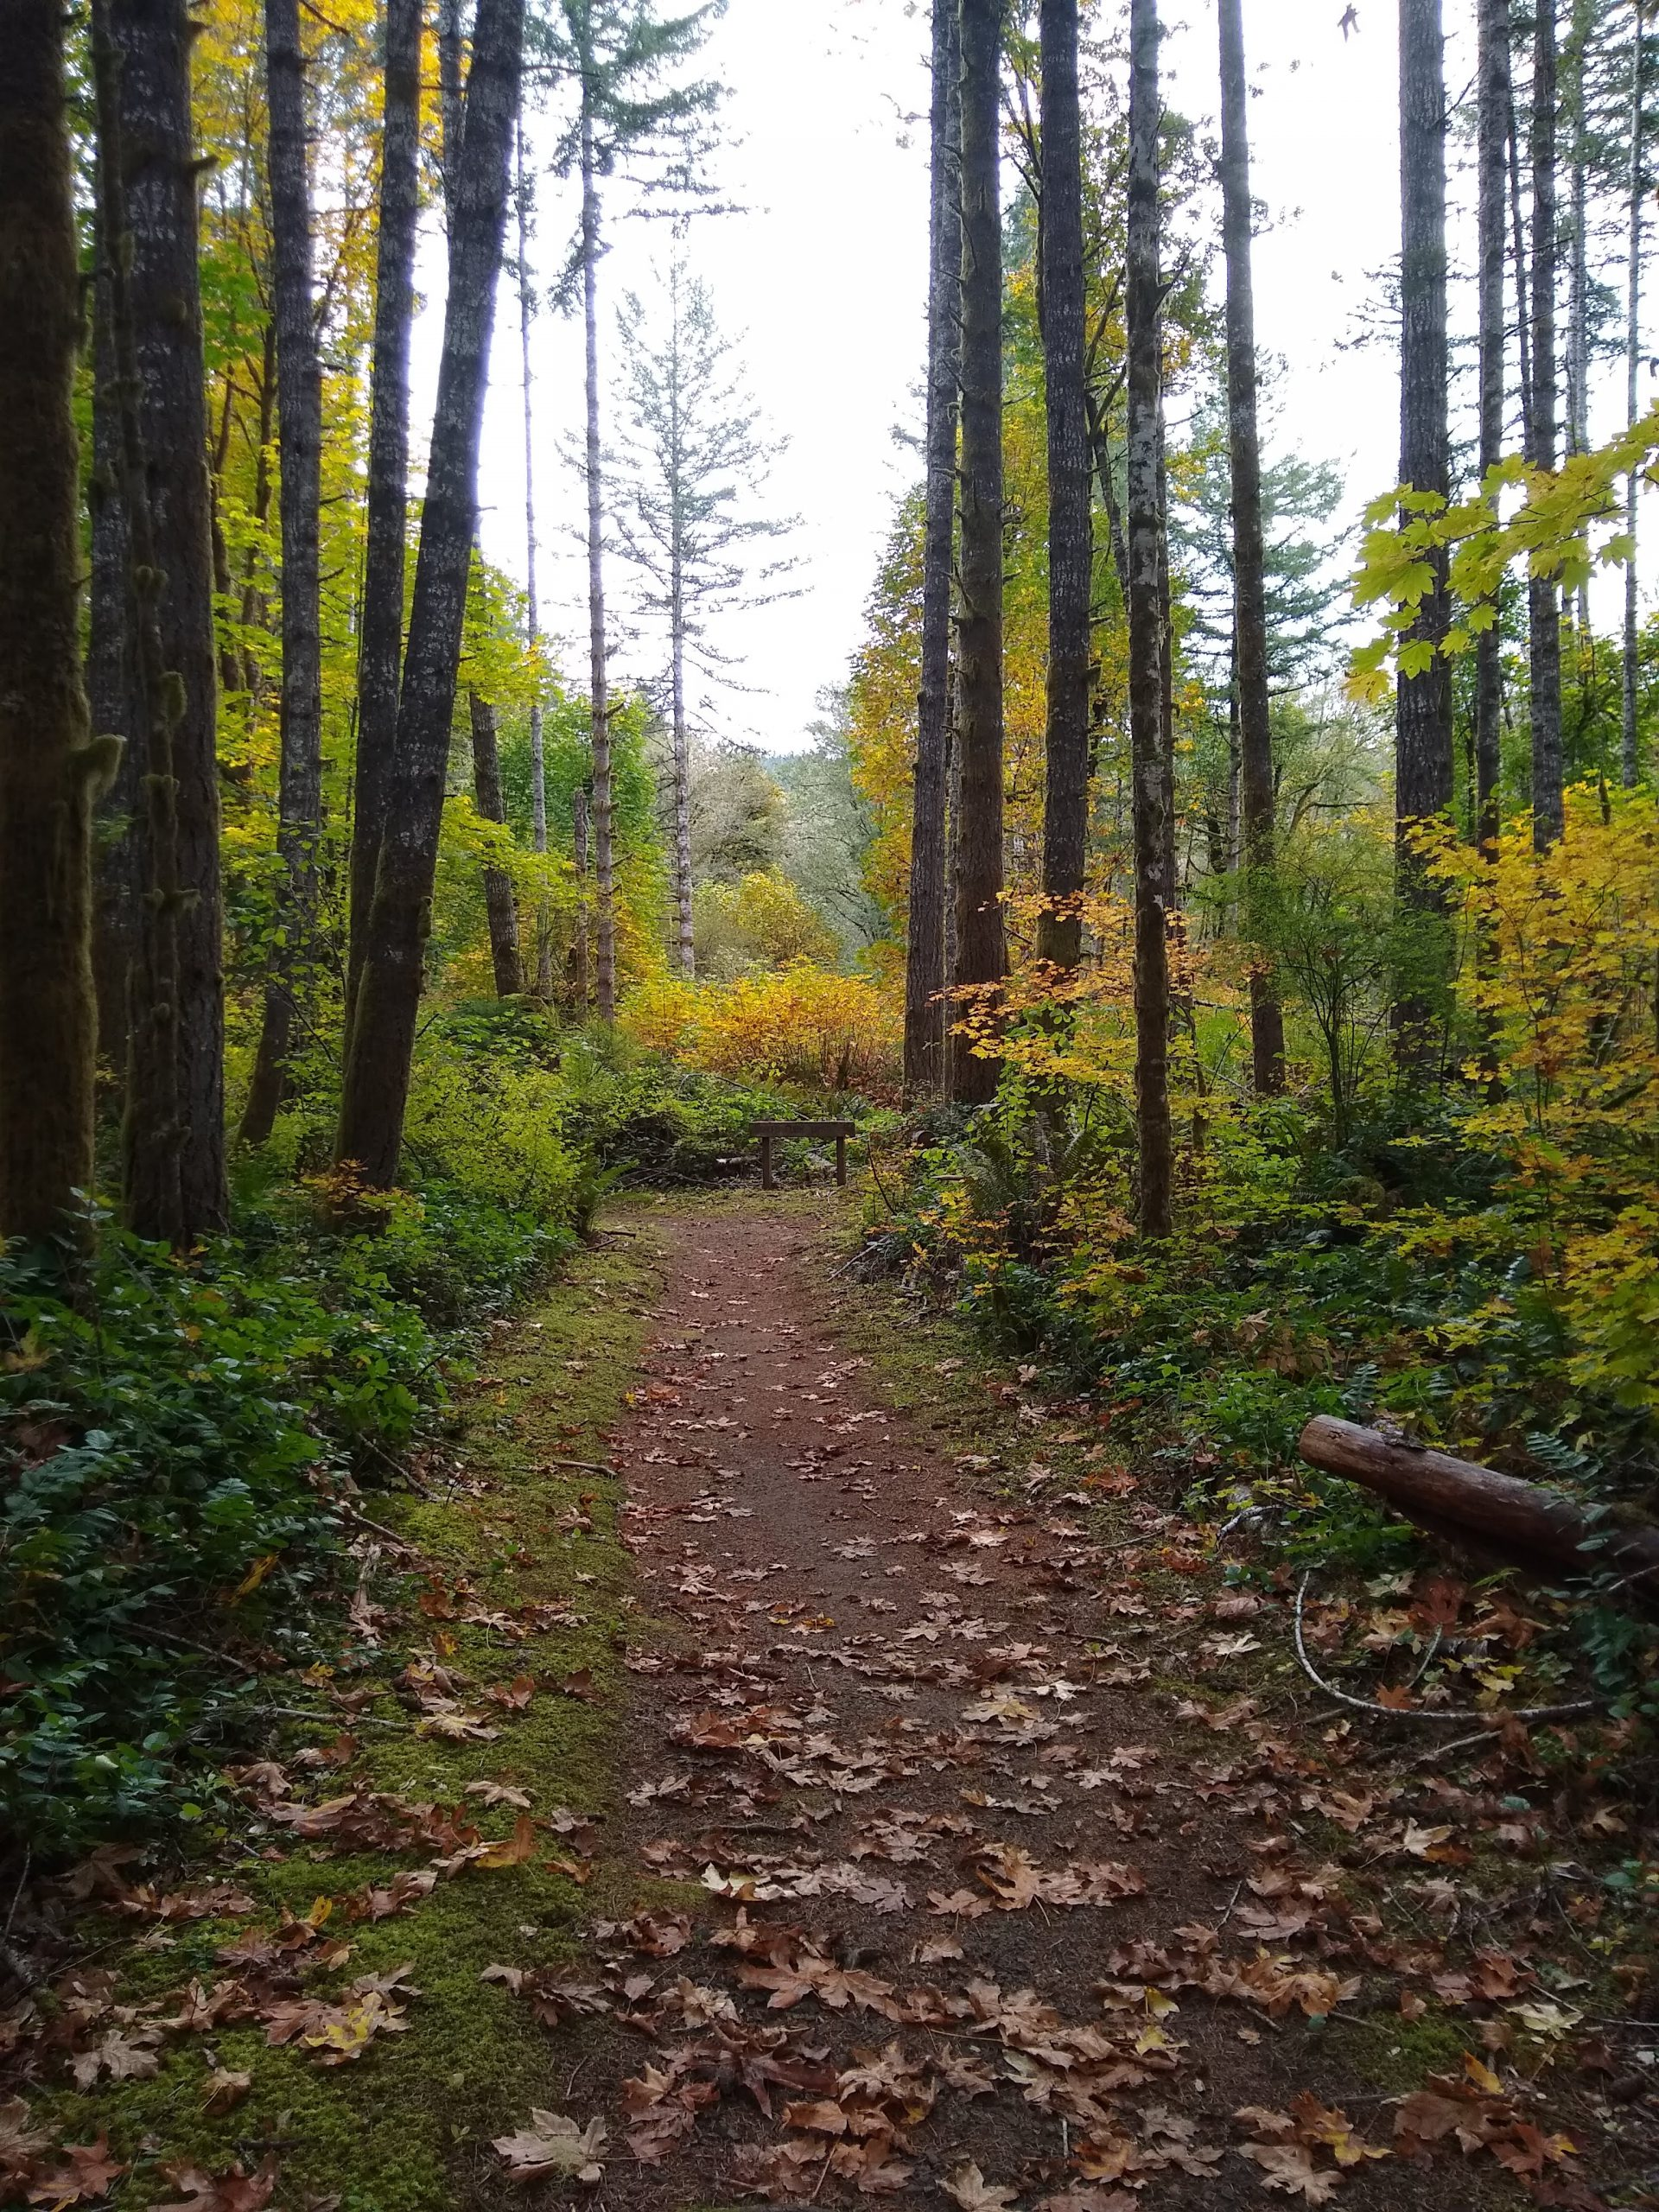 The trail at Clemens Park, where we hold Salmon Watch field trips each fall.